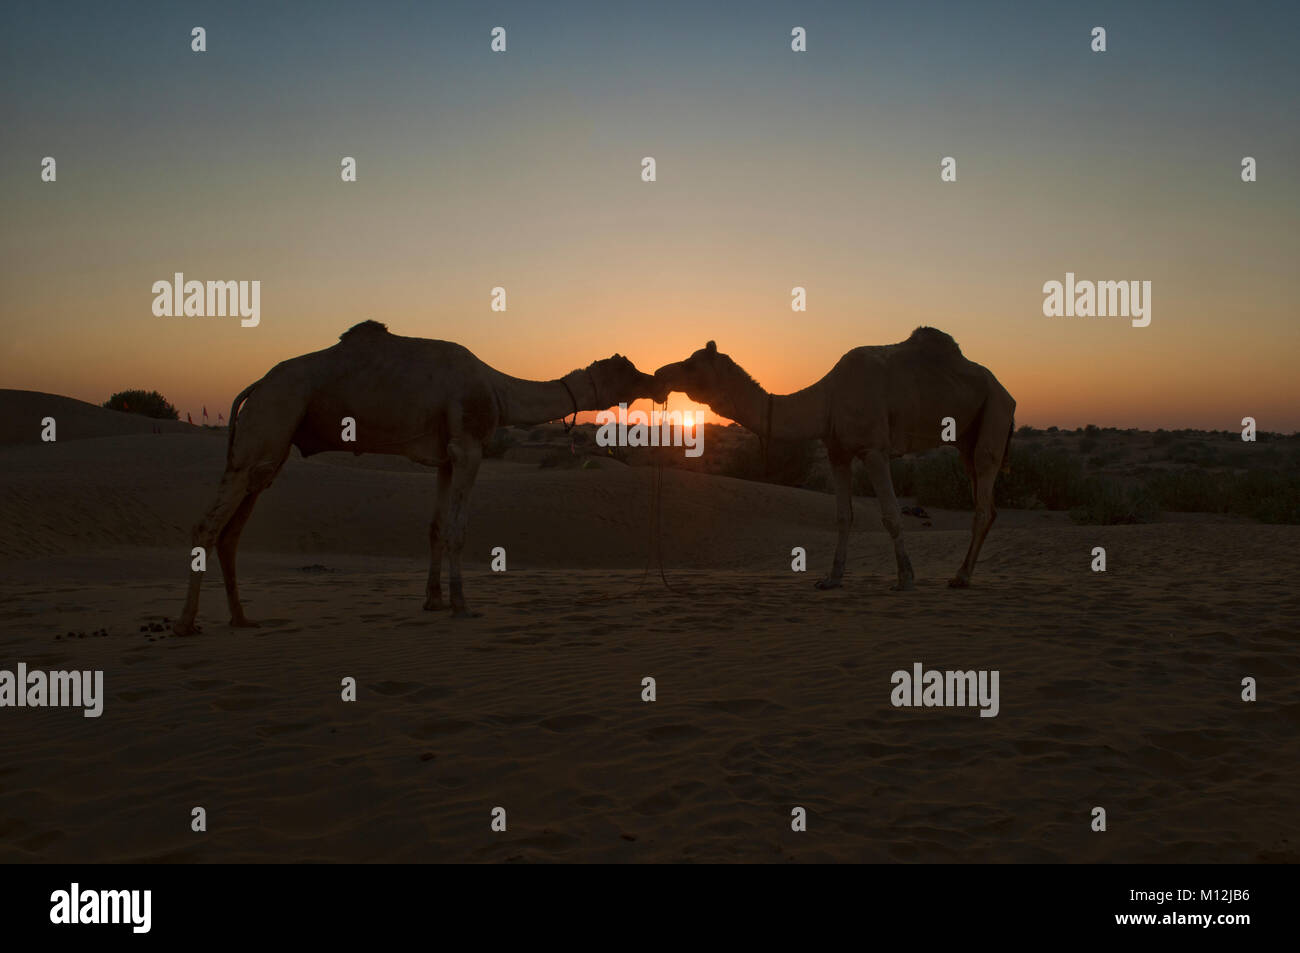 Kissing camels at sunset, Thar Desert, Rajasthan, India - Stock Image